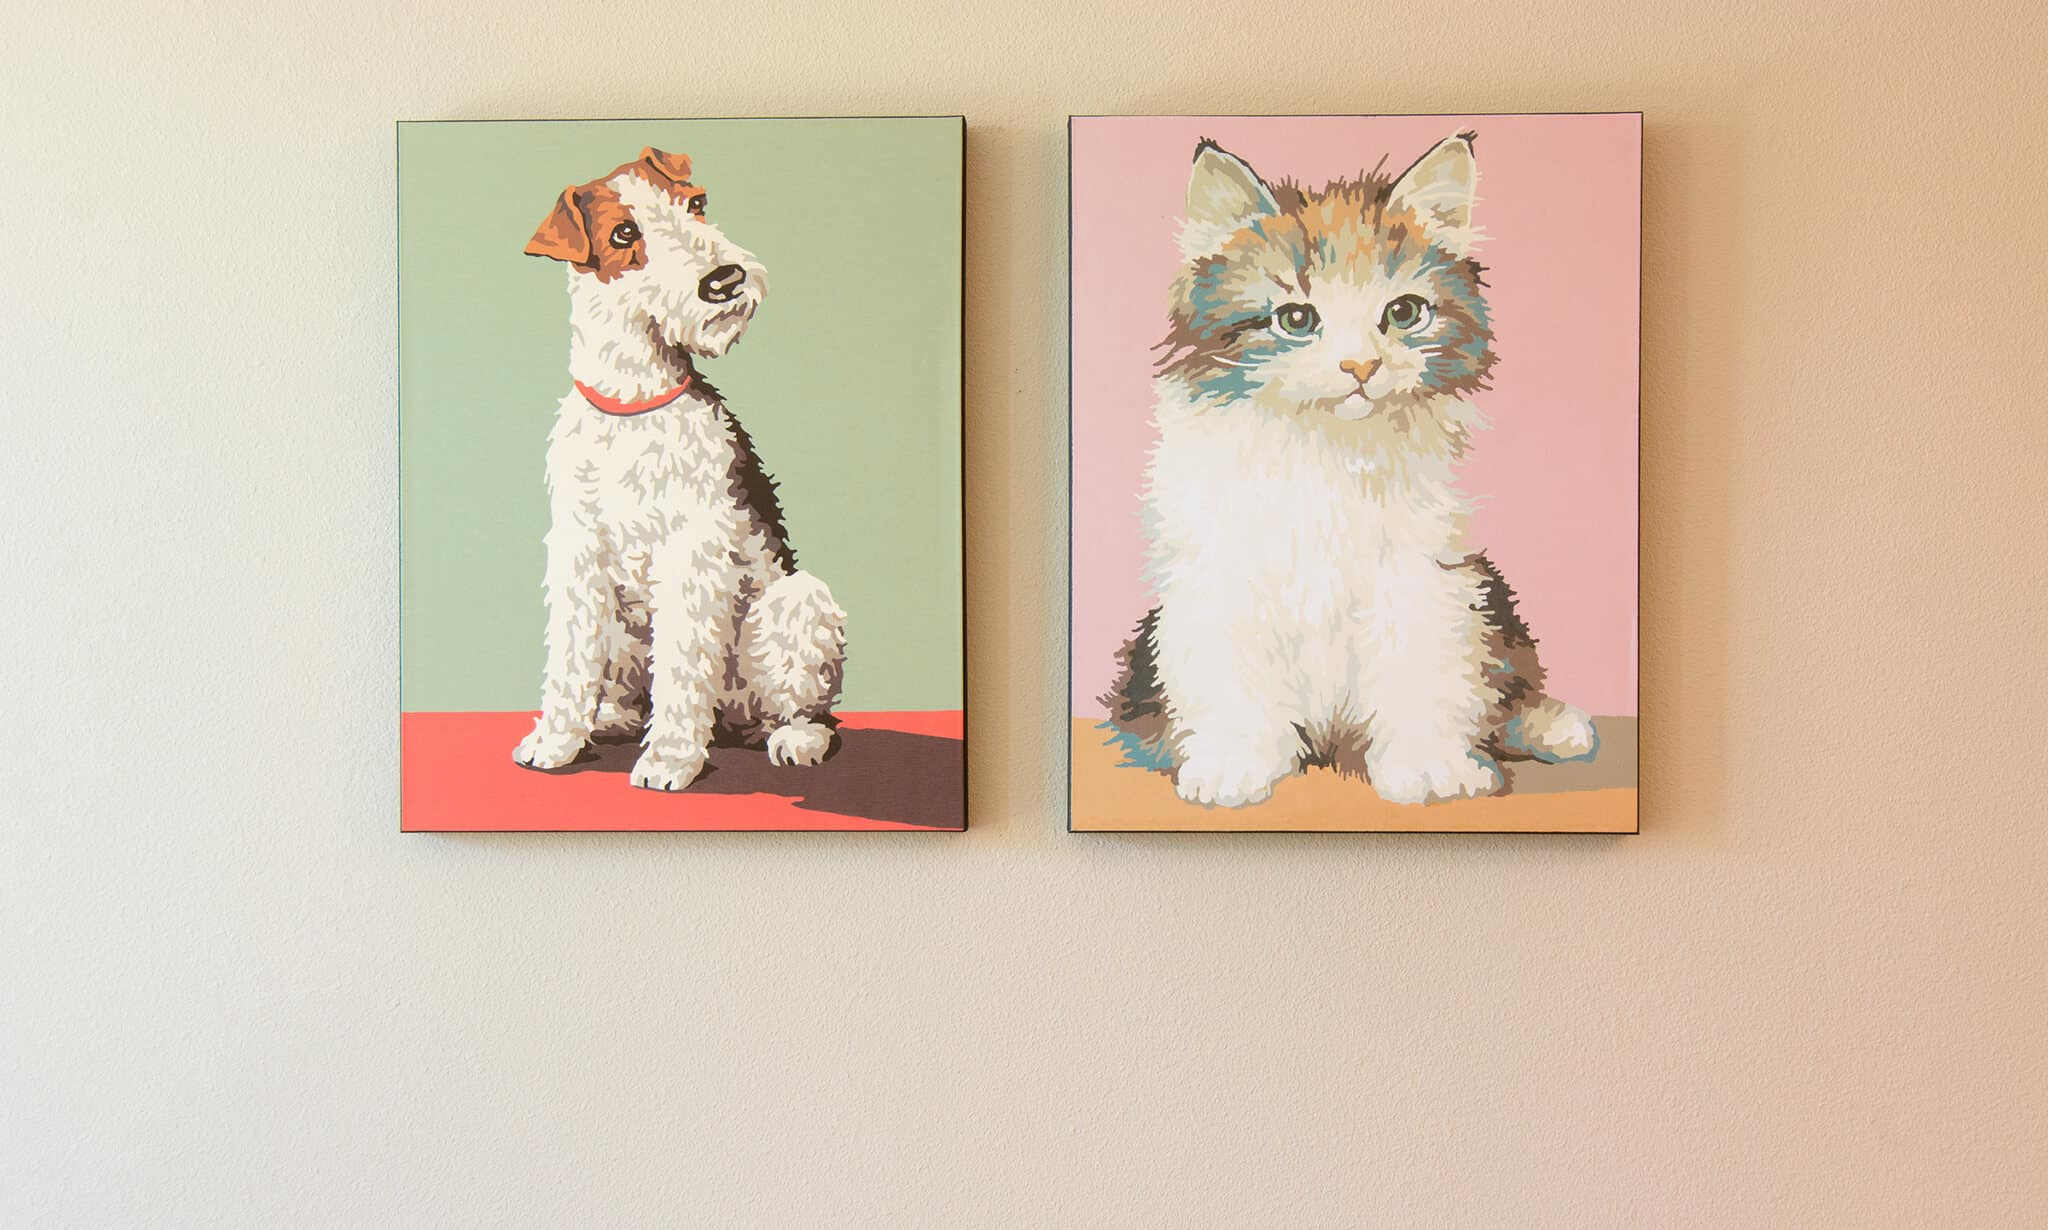 Two framed illustrations, one of a dog and one a cat done in pastel colors